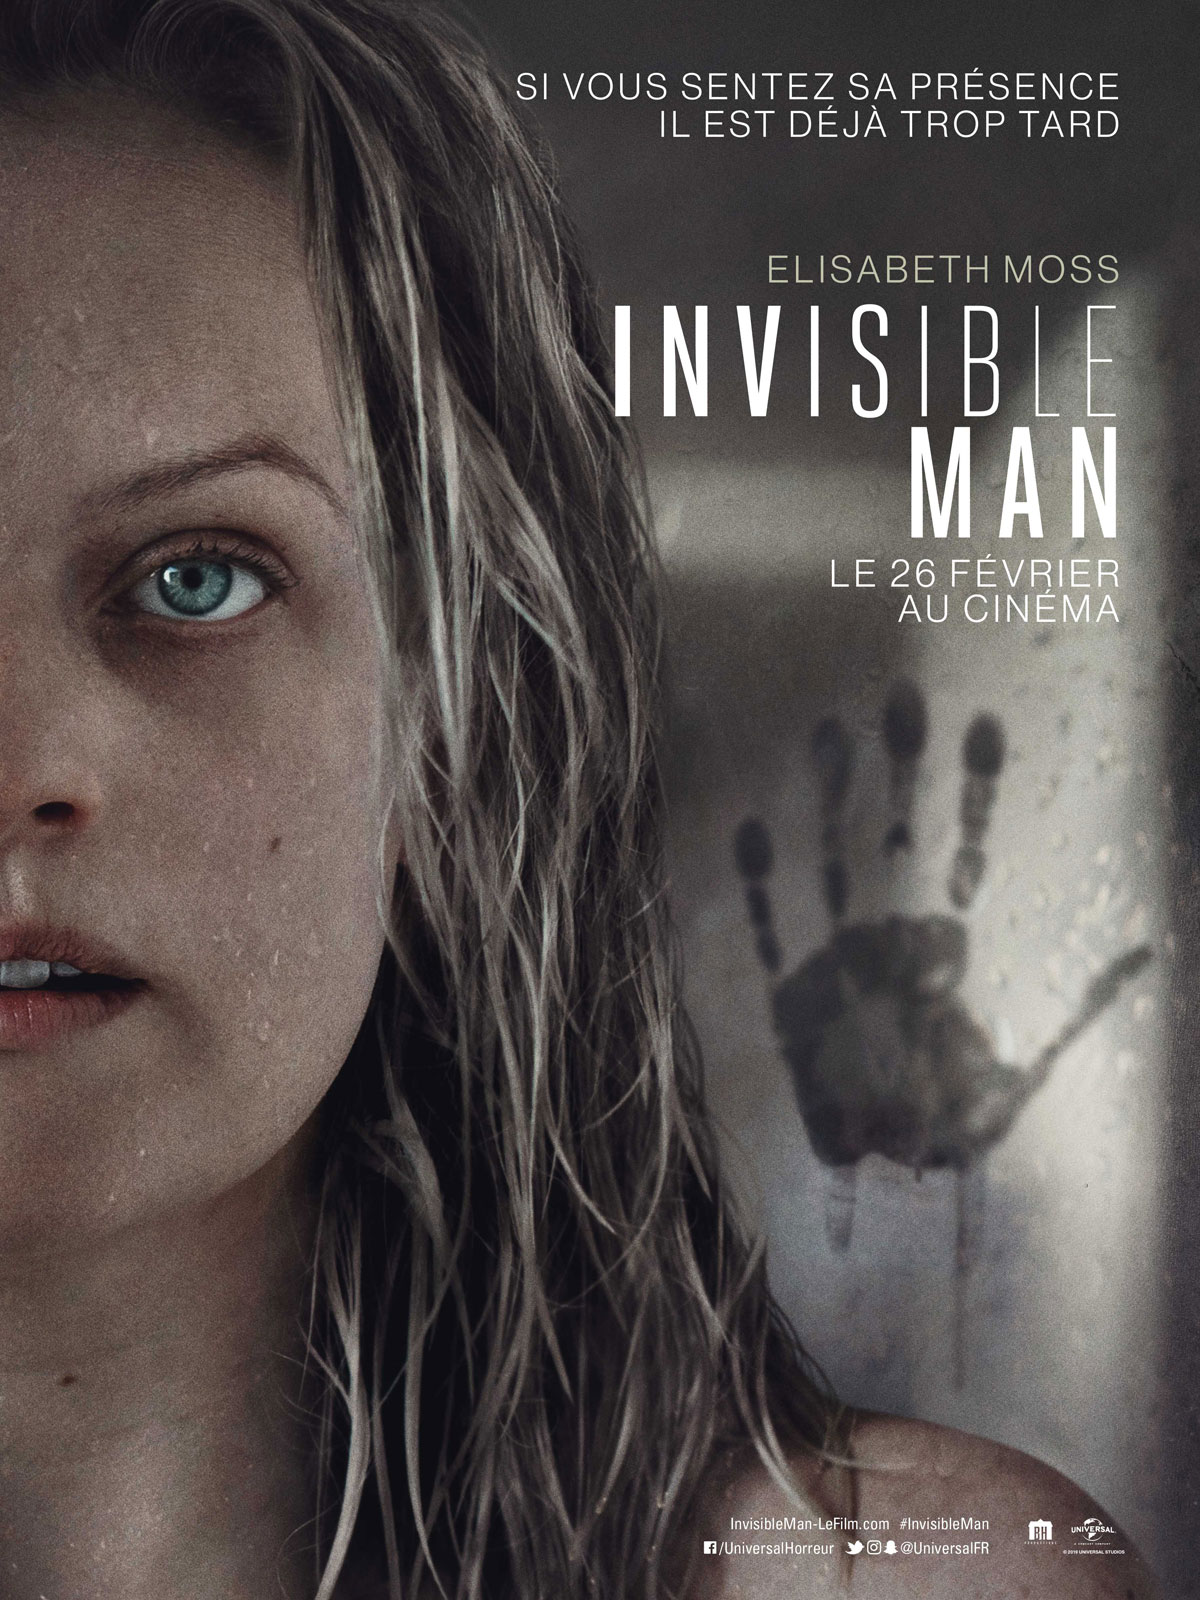 The Invisible Man 2020 720p WEB-DL Dual Audio In Hindi English